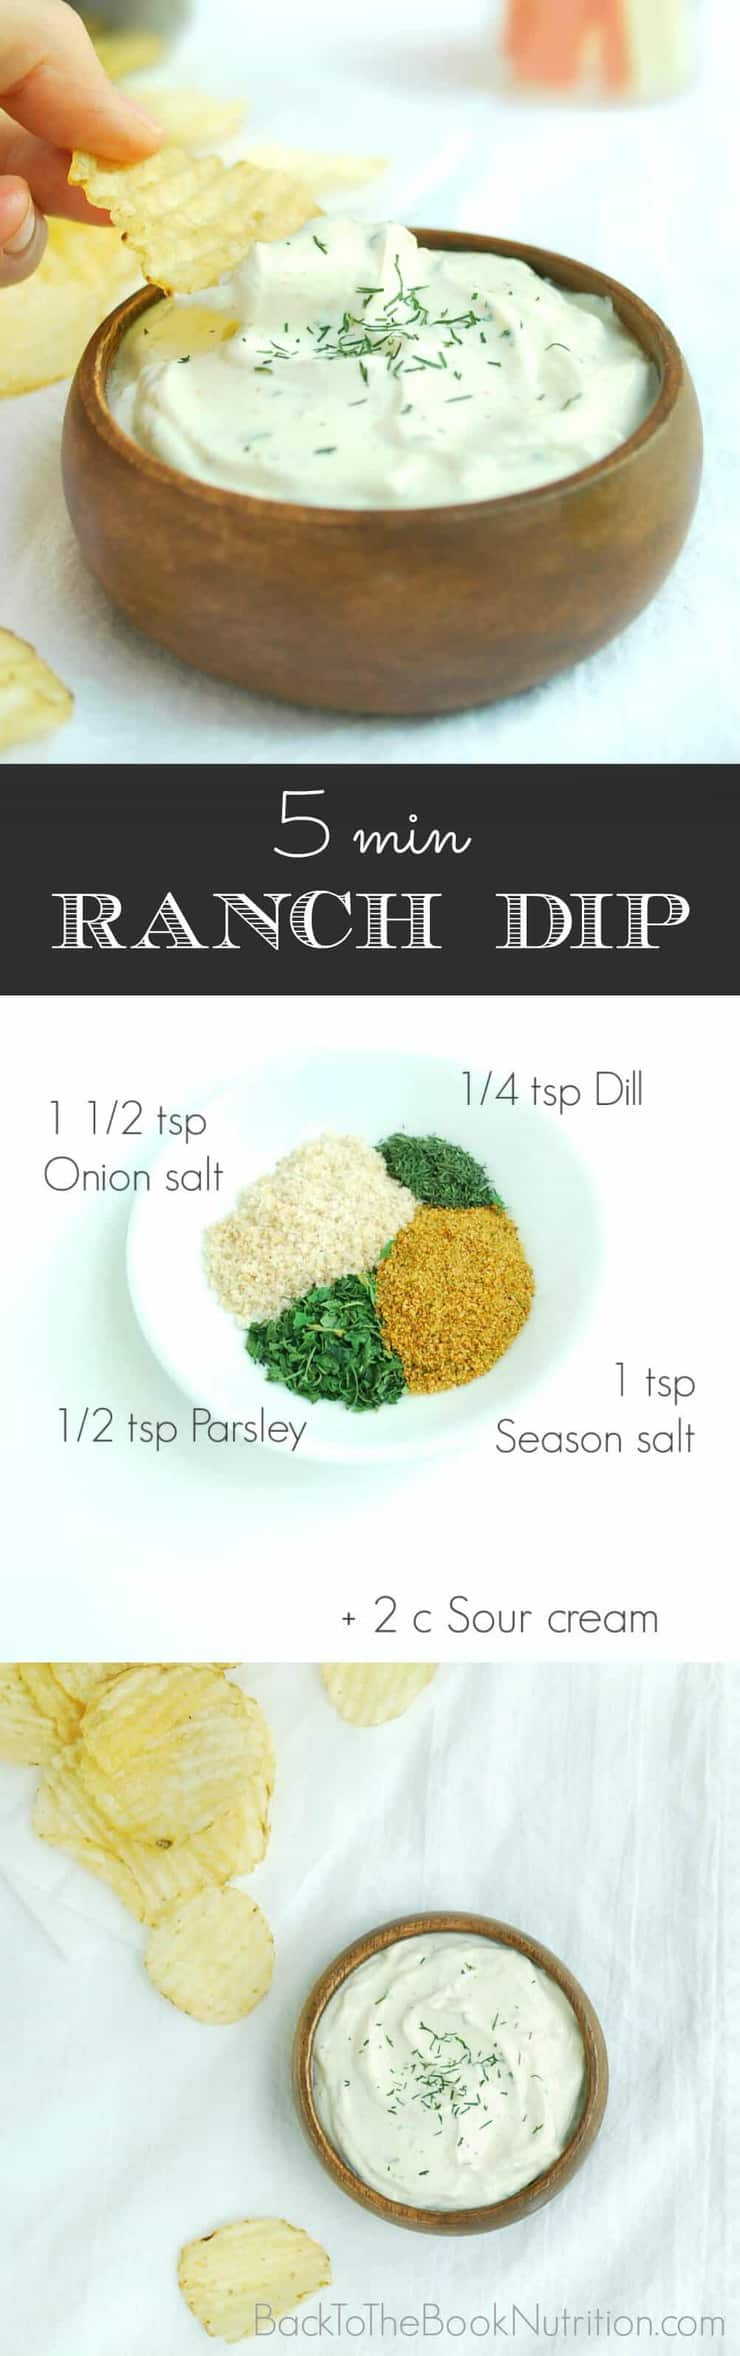 This easy 5 min Ranch Dip is delicious and so much healthier than packet mixes. Great with chips or raw veggies! | Back To The Book Nutrition